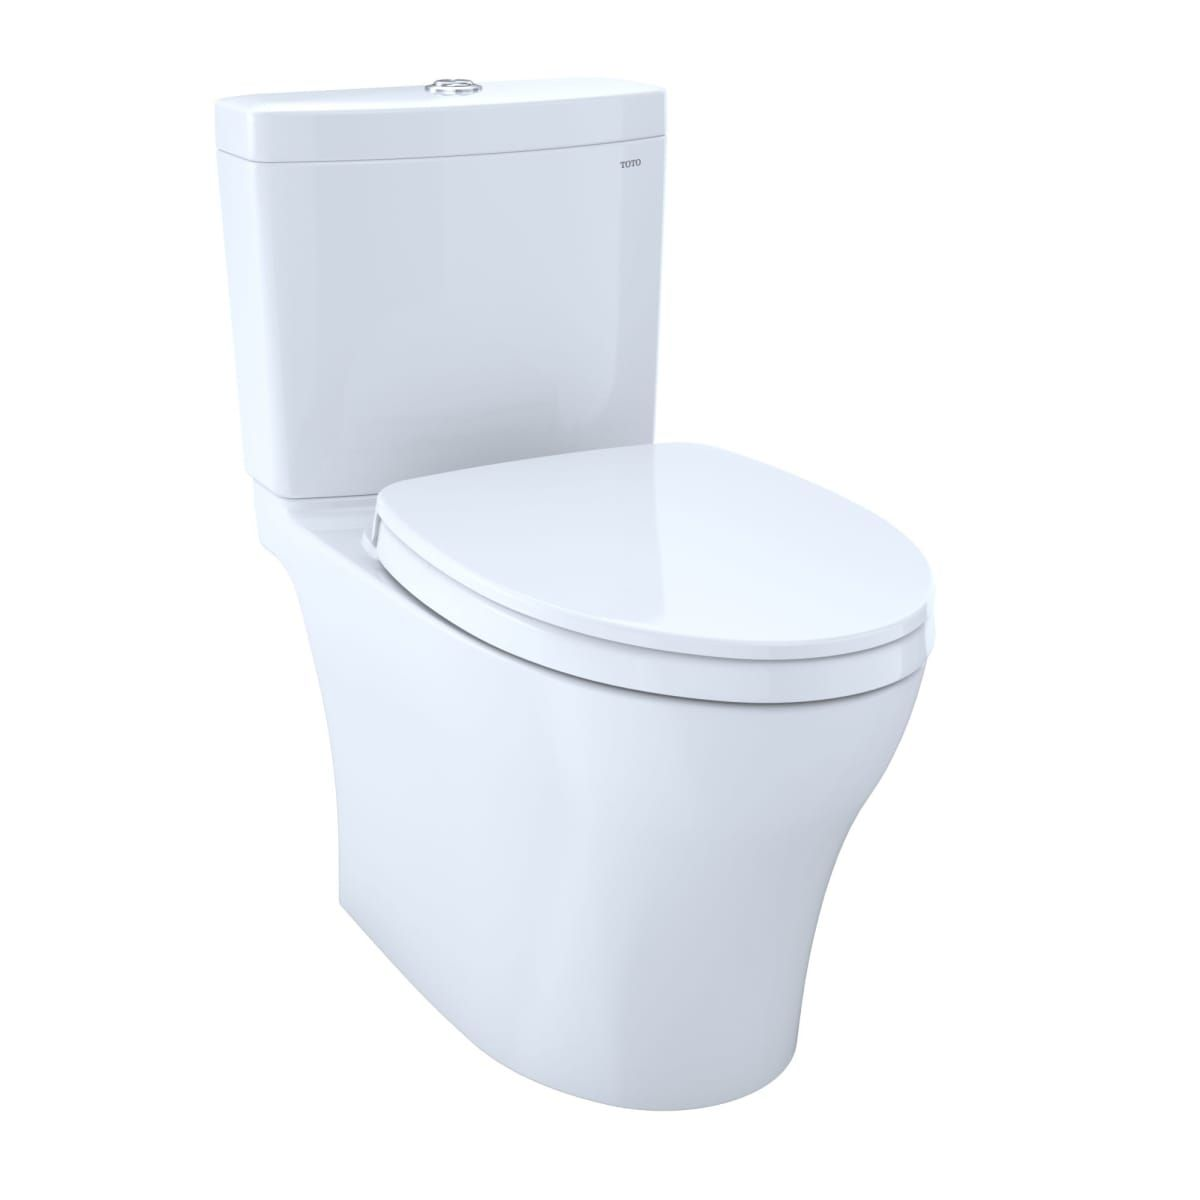 Toto Ms446124cemg 01 Cotton Aquia Iv Dual Flush 1 28 0 8 Gpf Two Piece Elongated Toilet Seat Included Hardware Fixtures Pinterest Toilet Bathroom